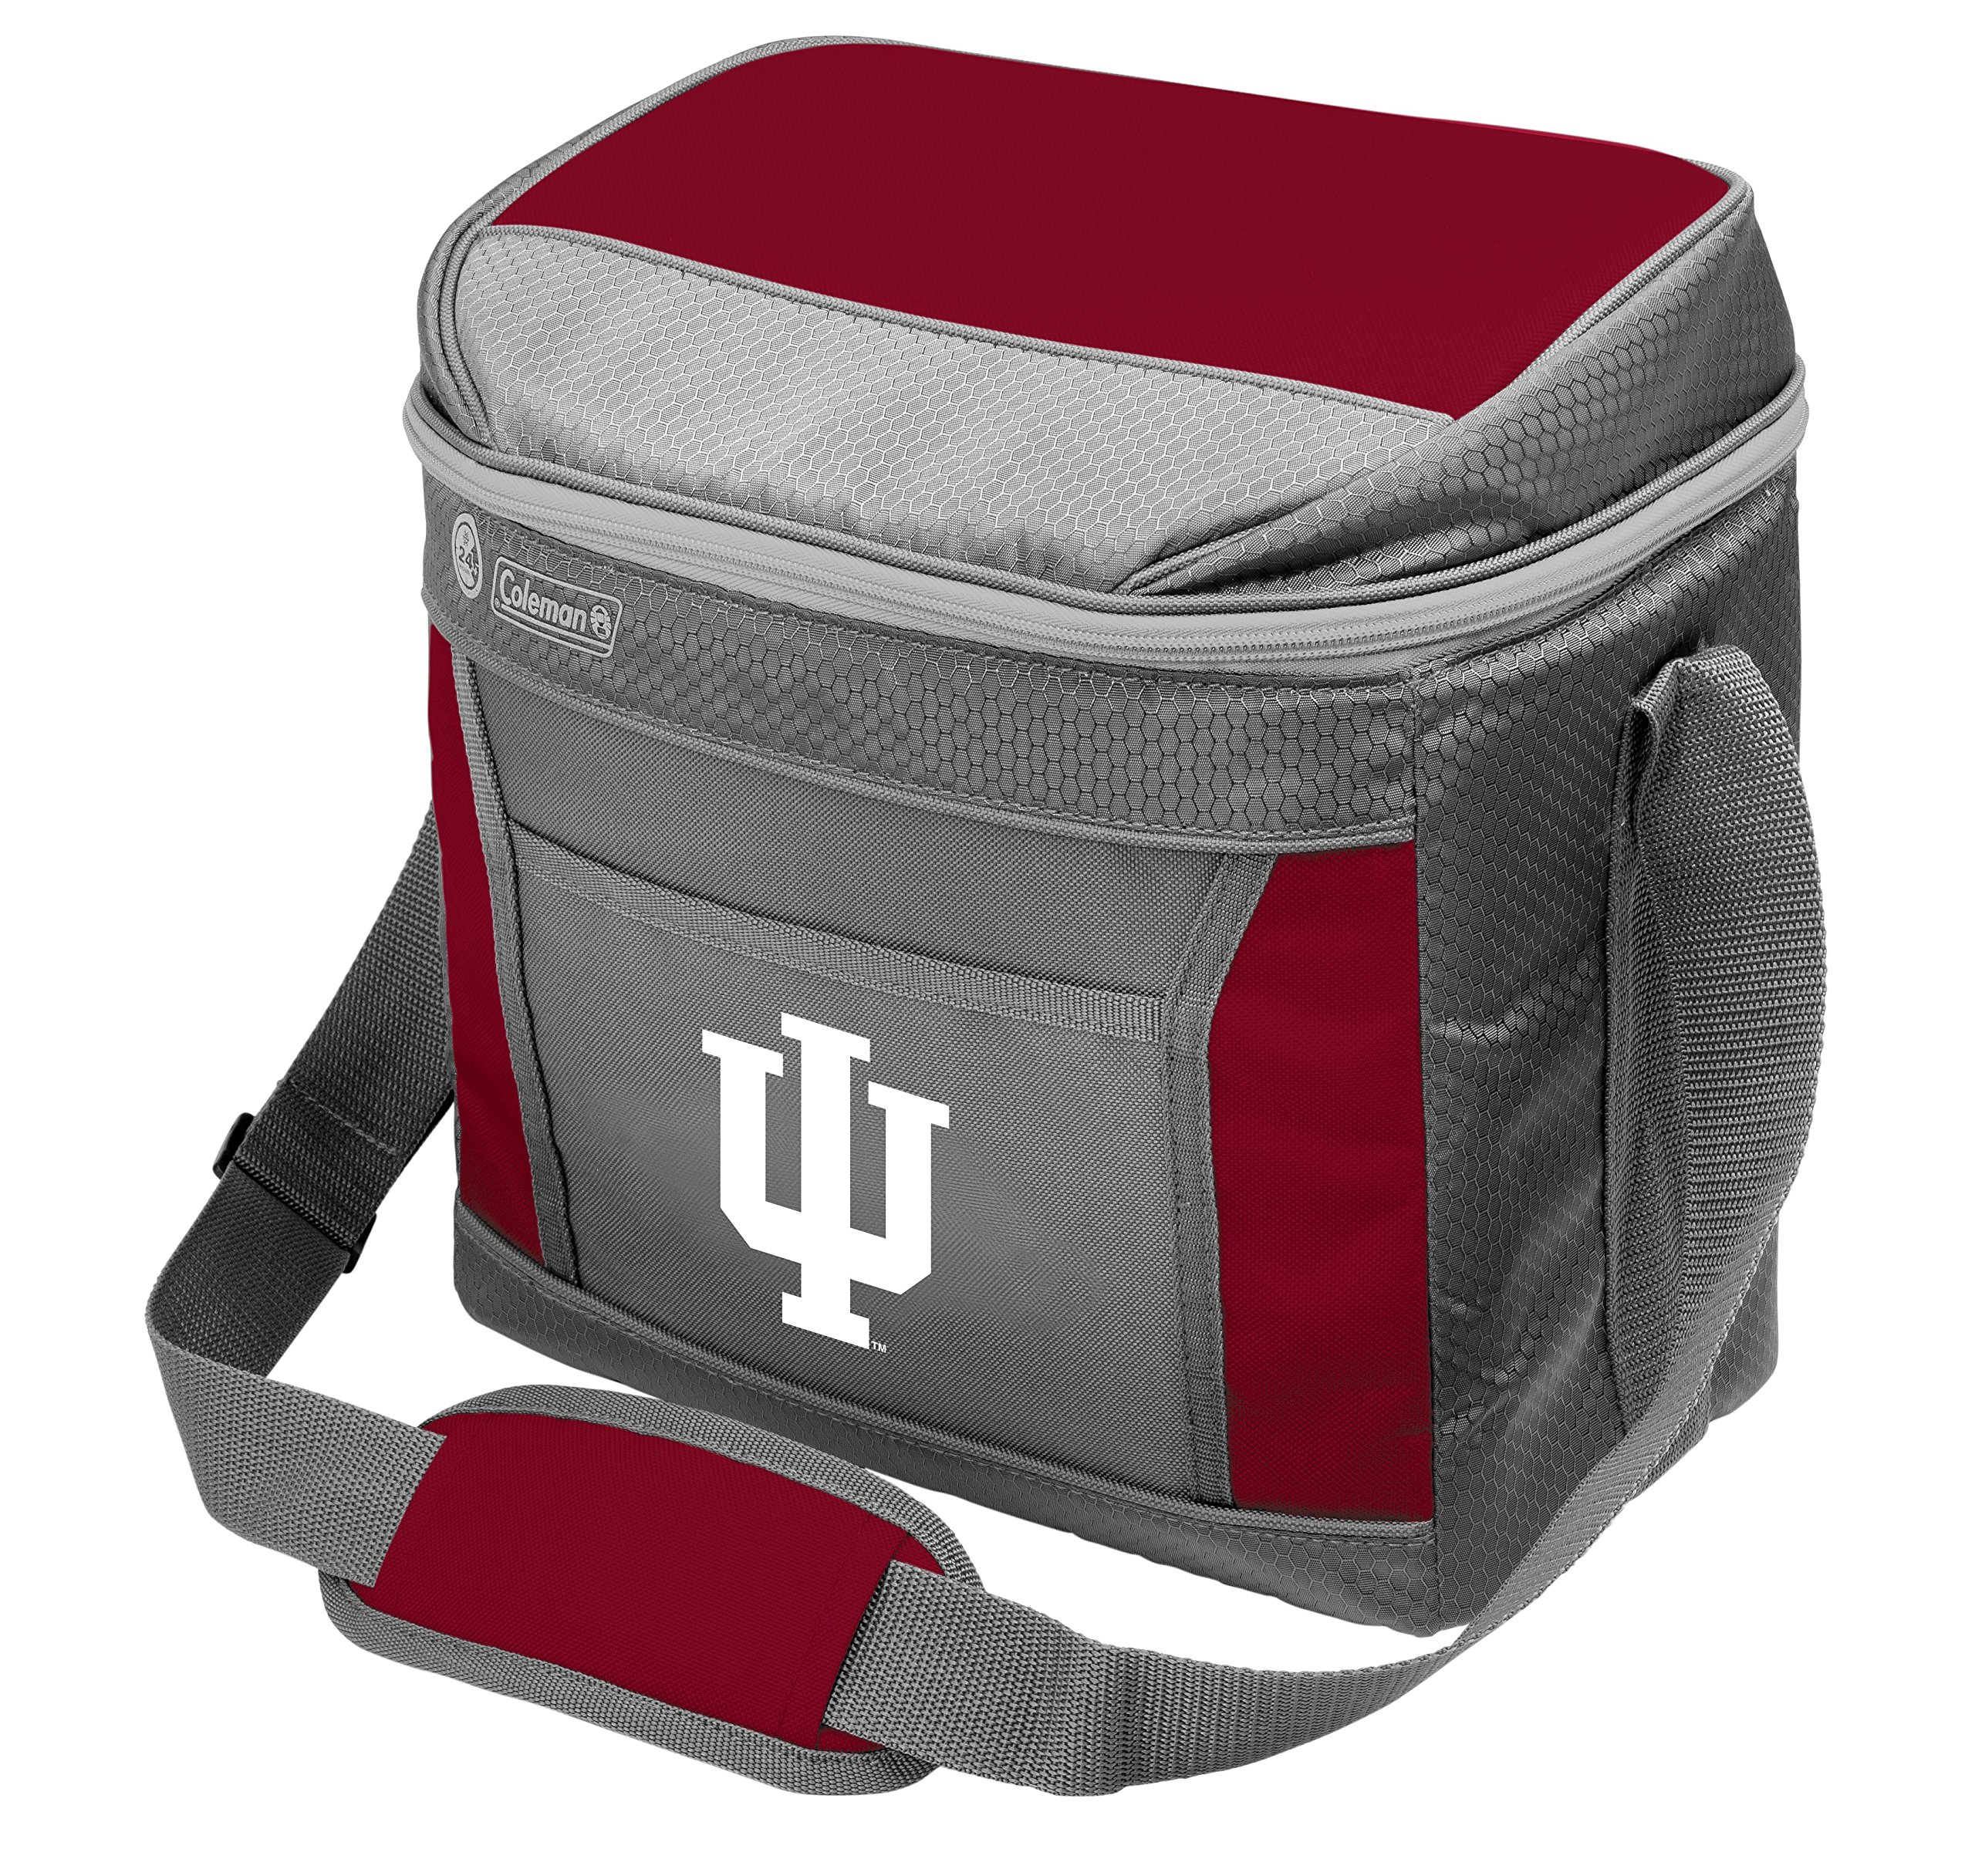 Coleman NCAA Soft-Sided Insulated Cooler Bag, 16-Can Capacity, Indiana University Hoosiers